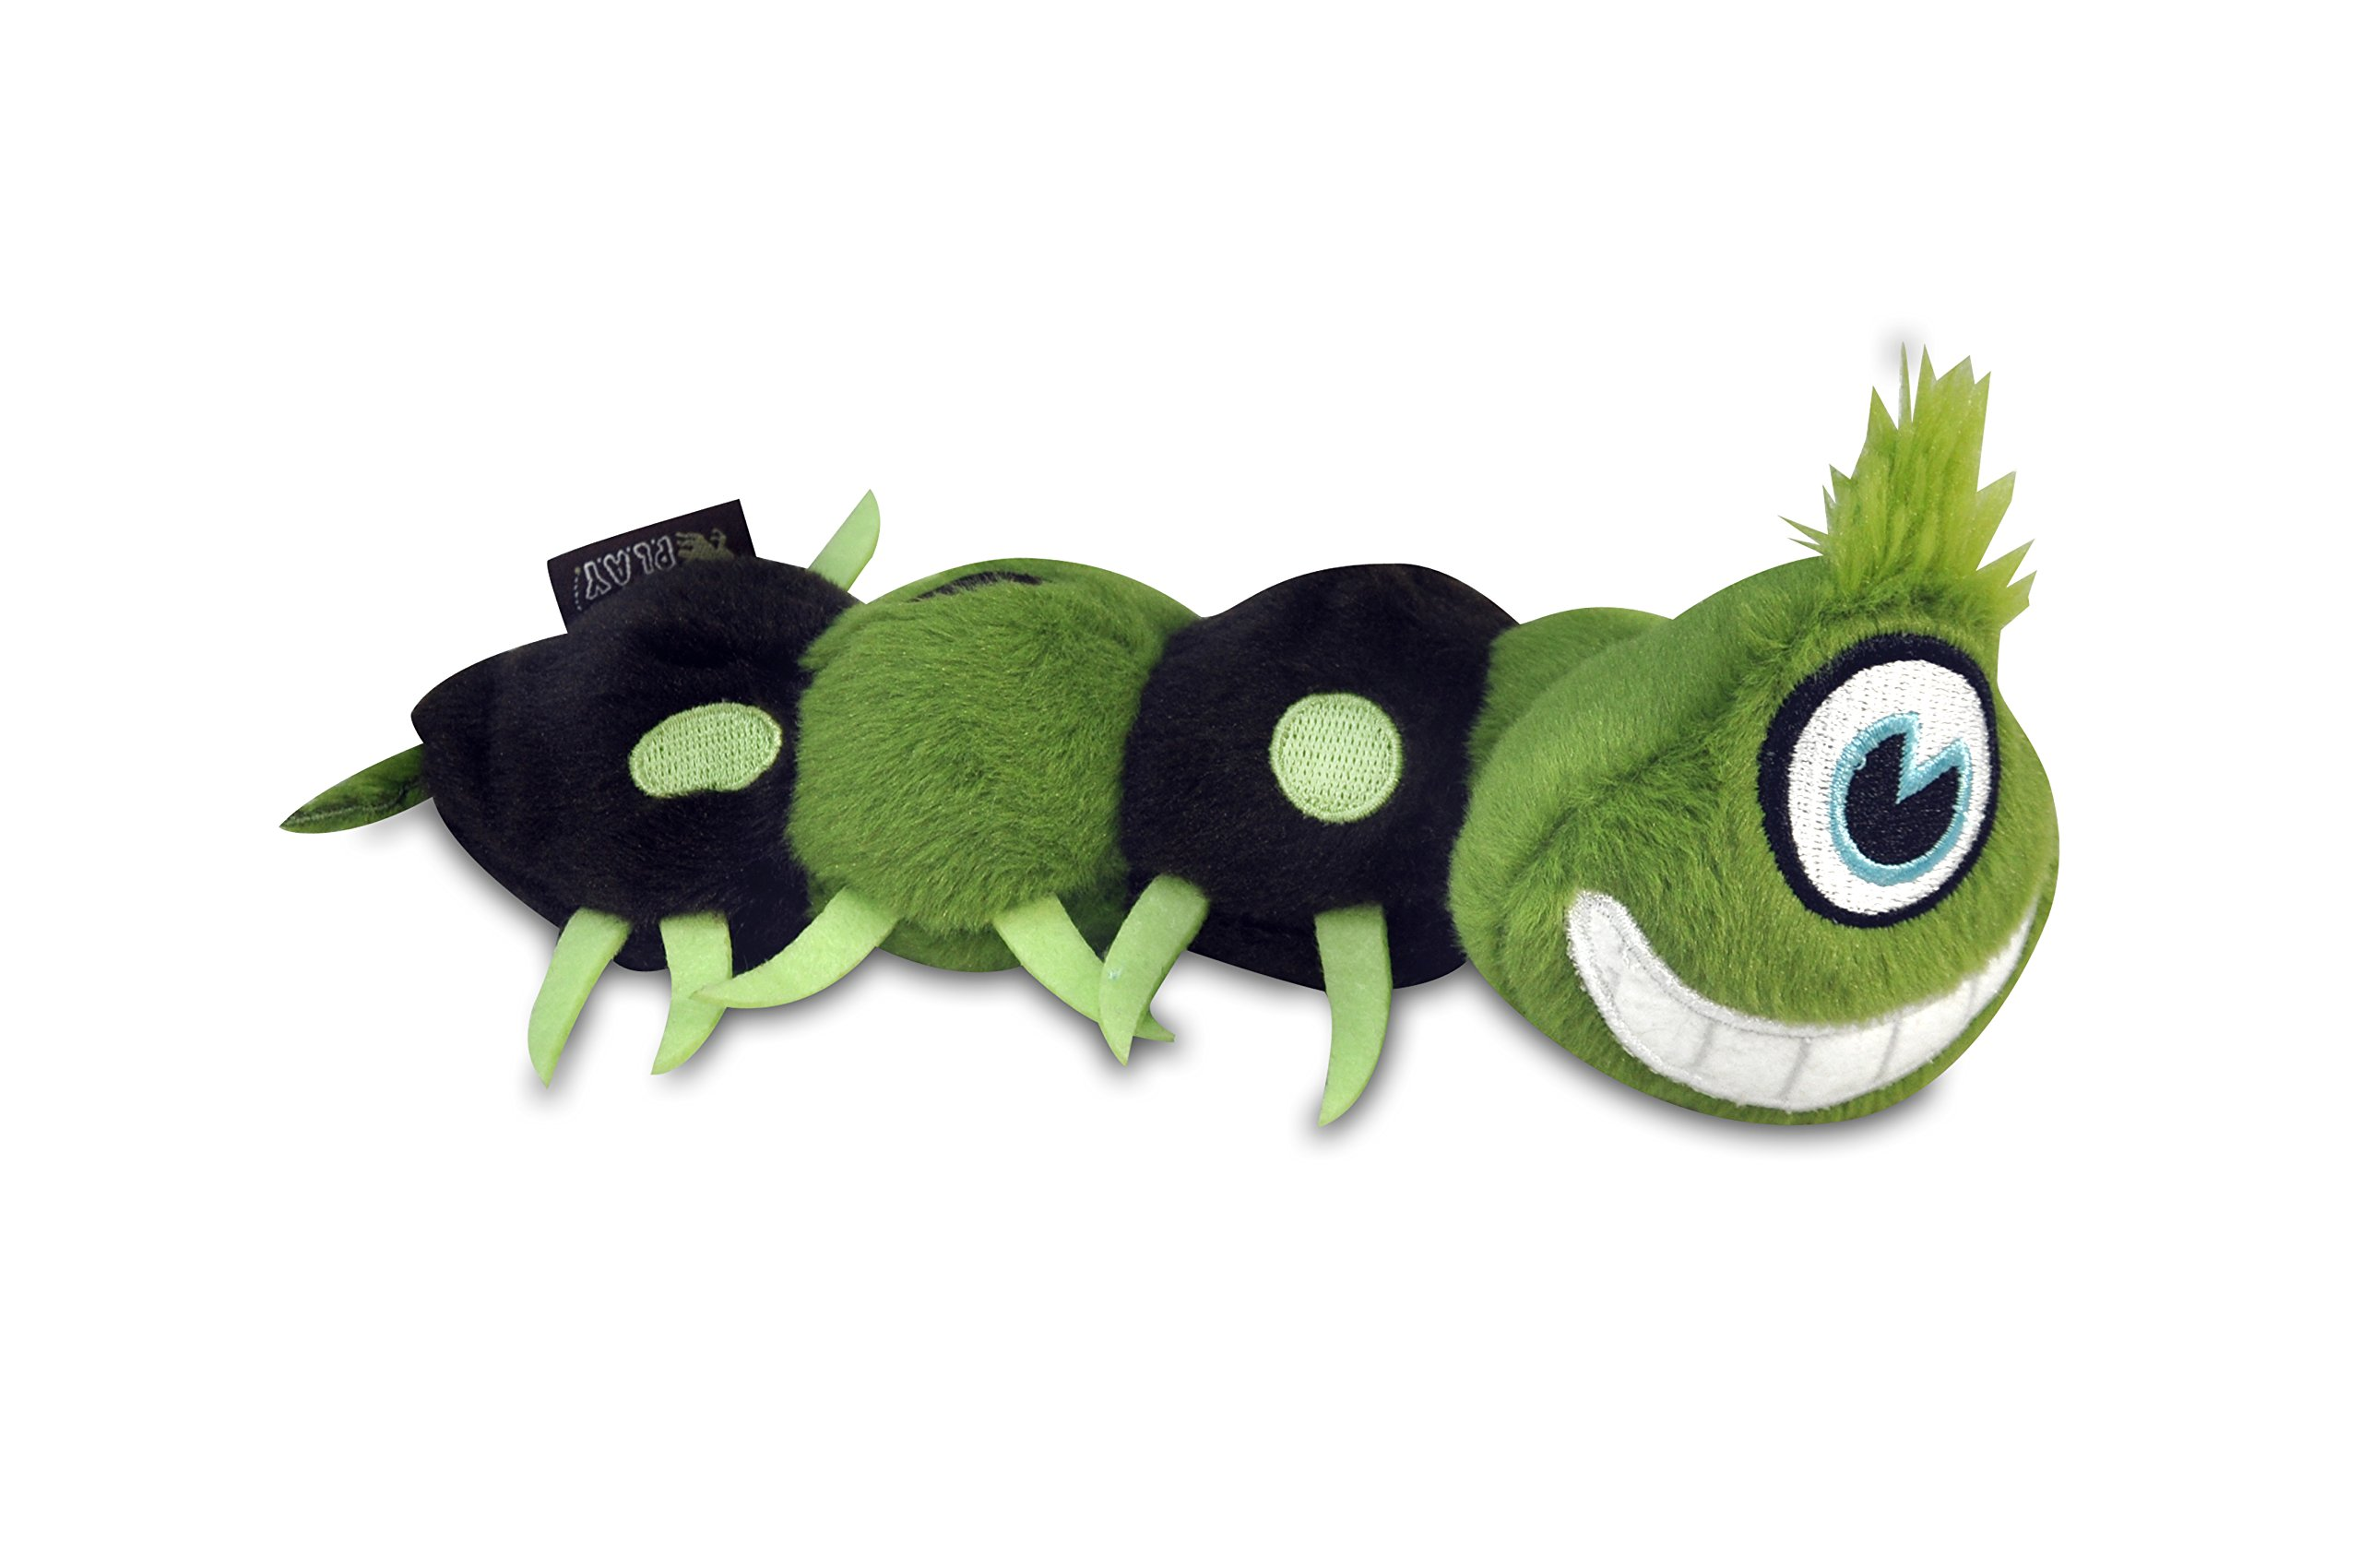 P.L.A.Y. - Monster Toy Collection Scurry Monster with Squeaker Pet Toy - Green